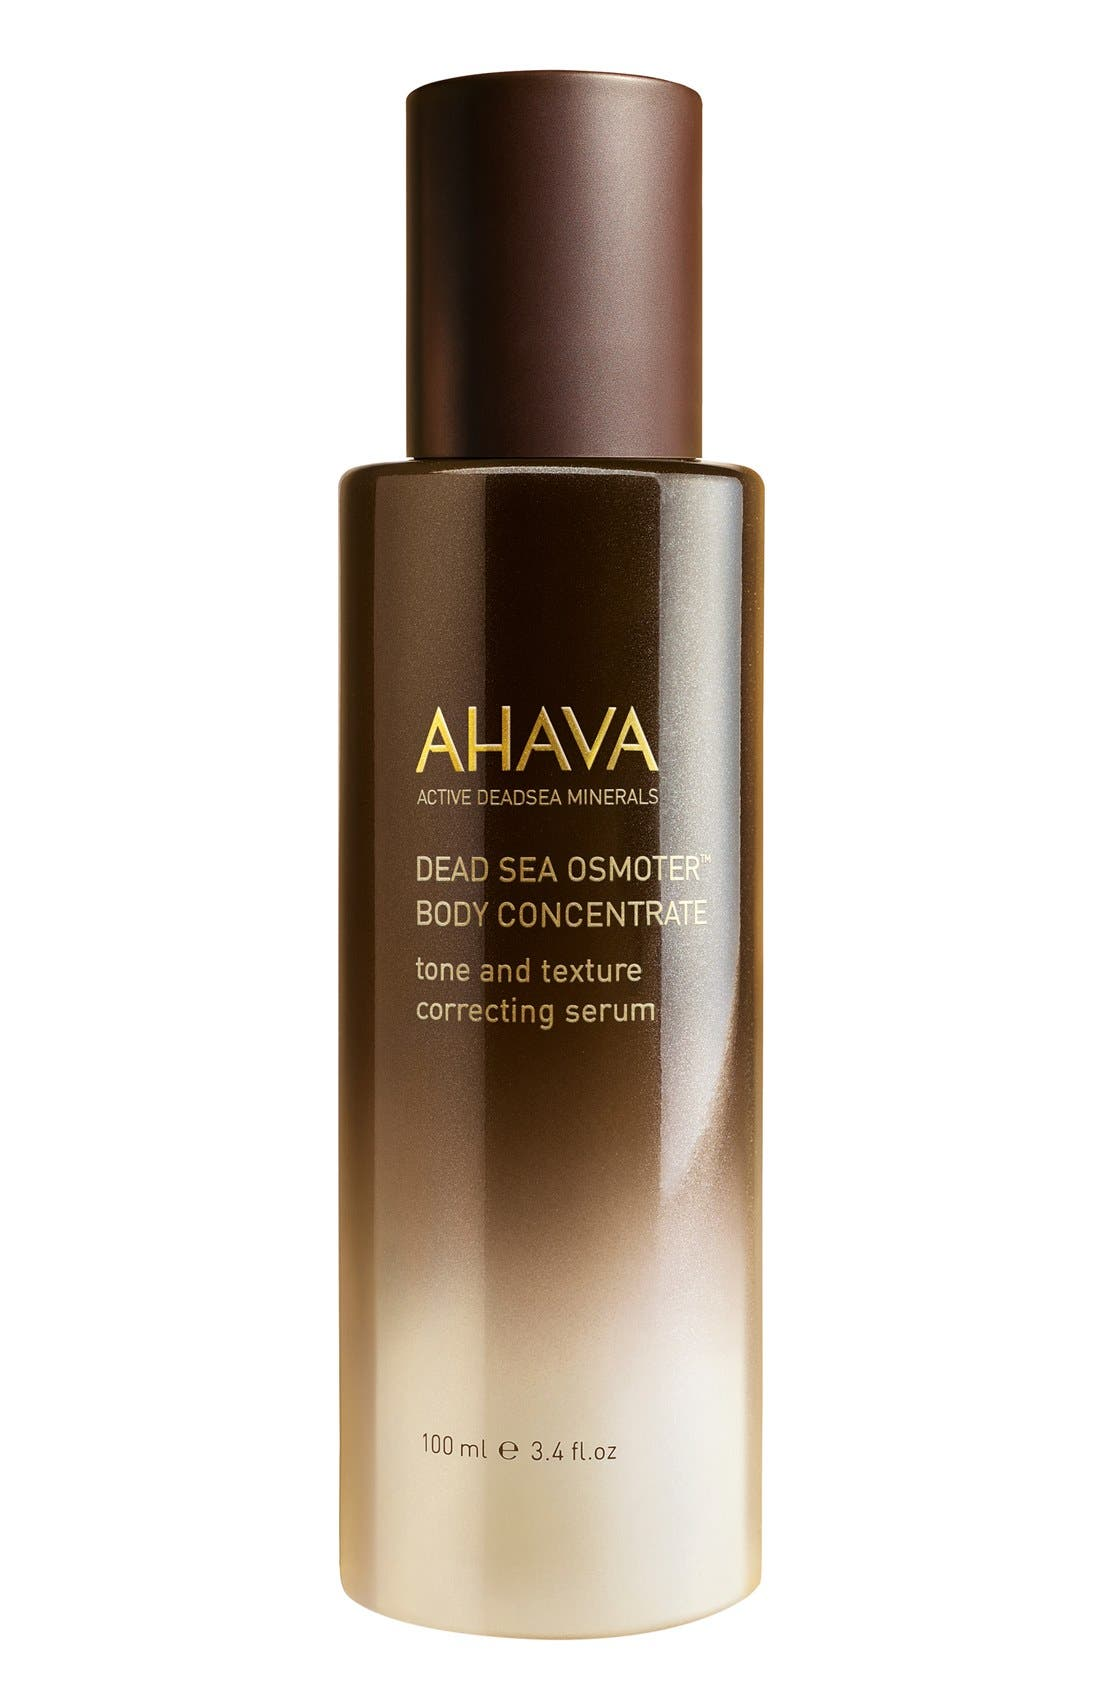 AHAVA Dead Sea Osmoter™ Body Concentrate